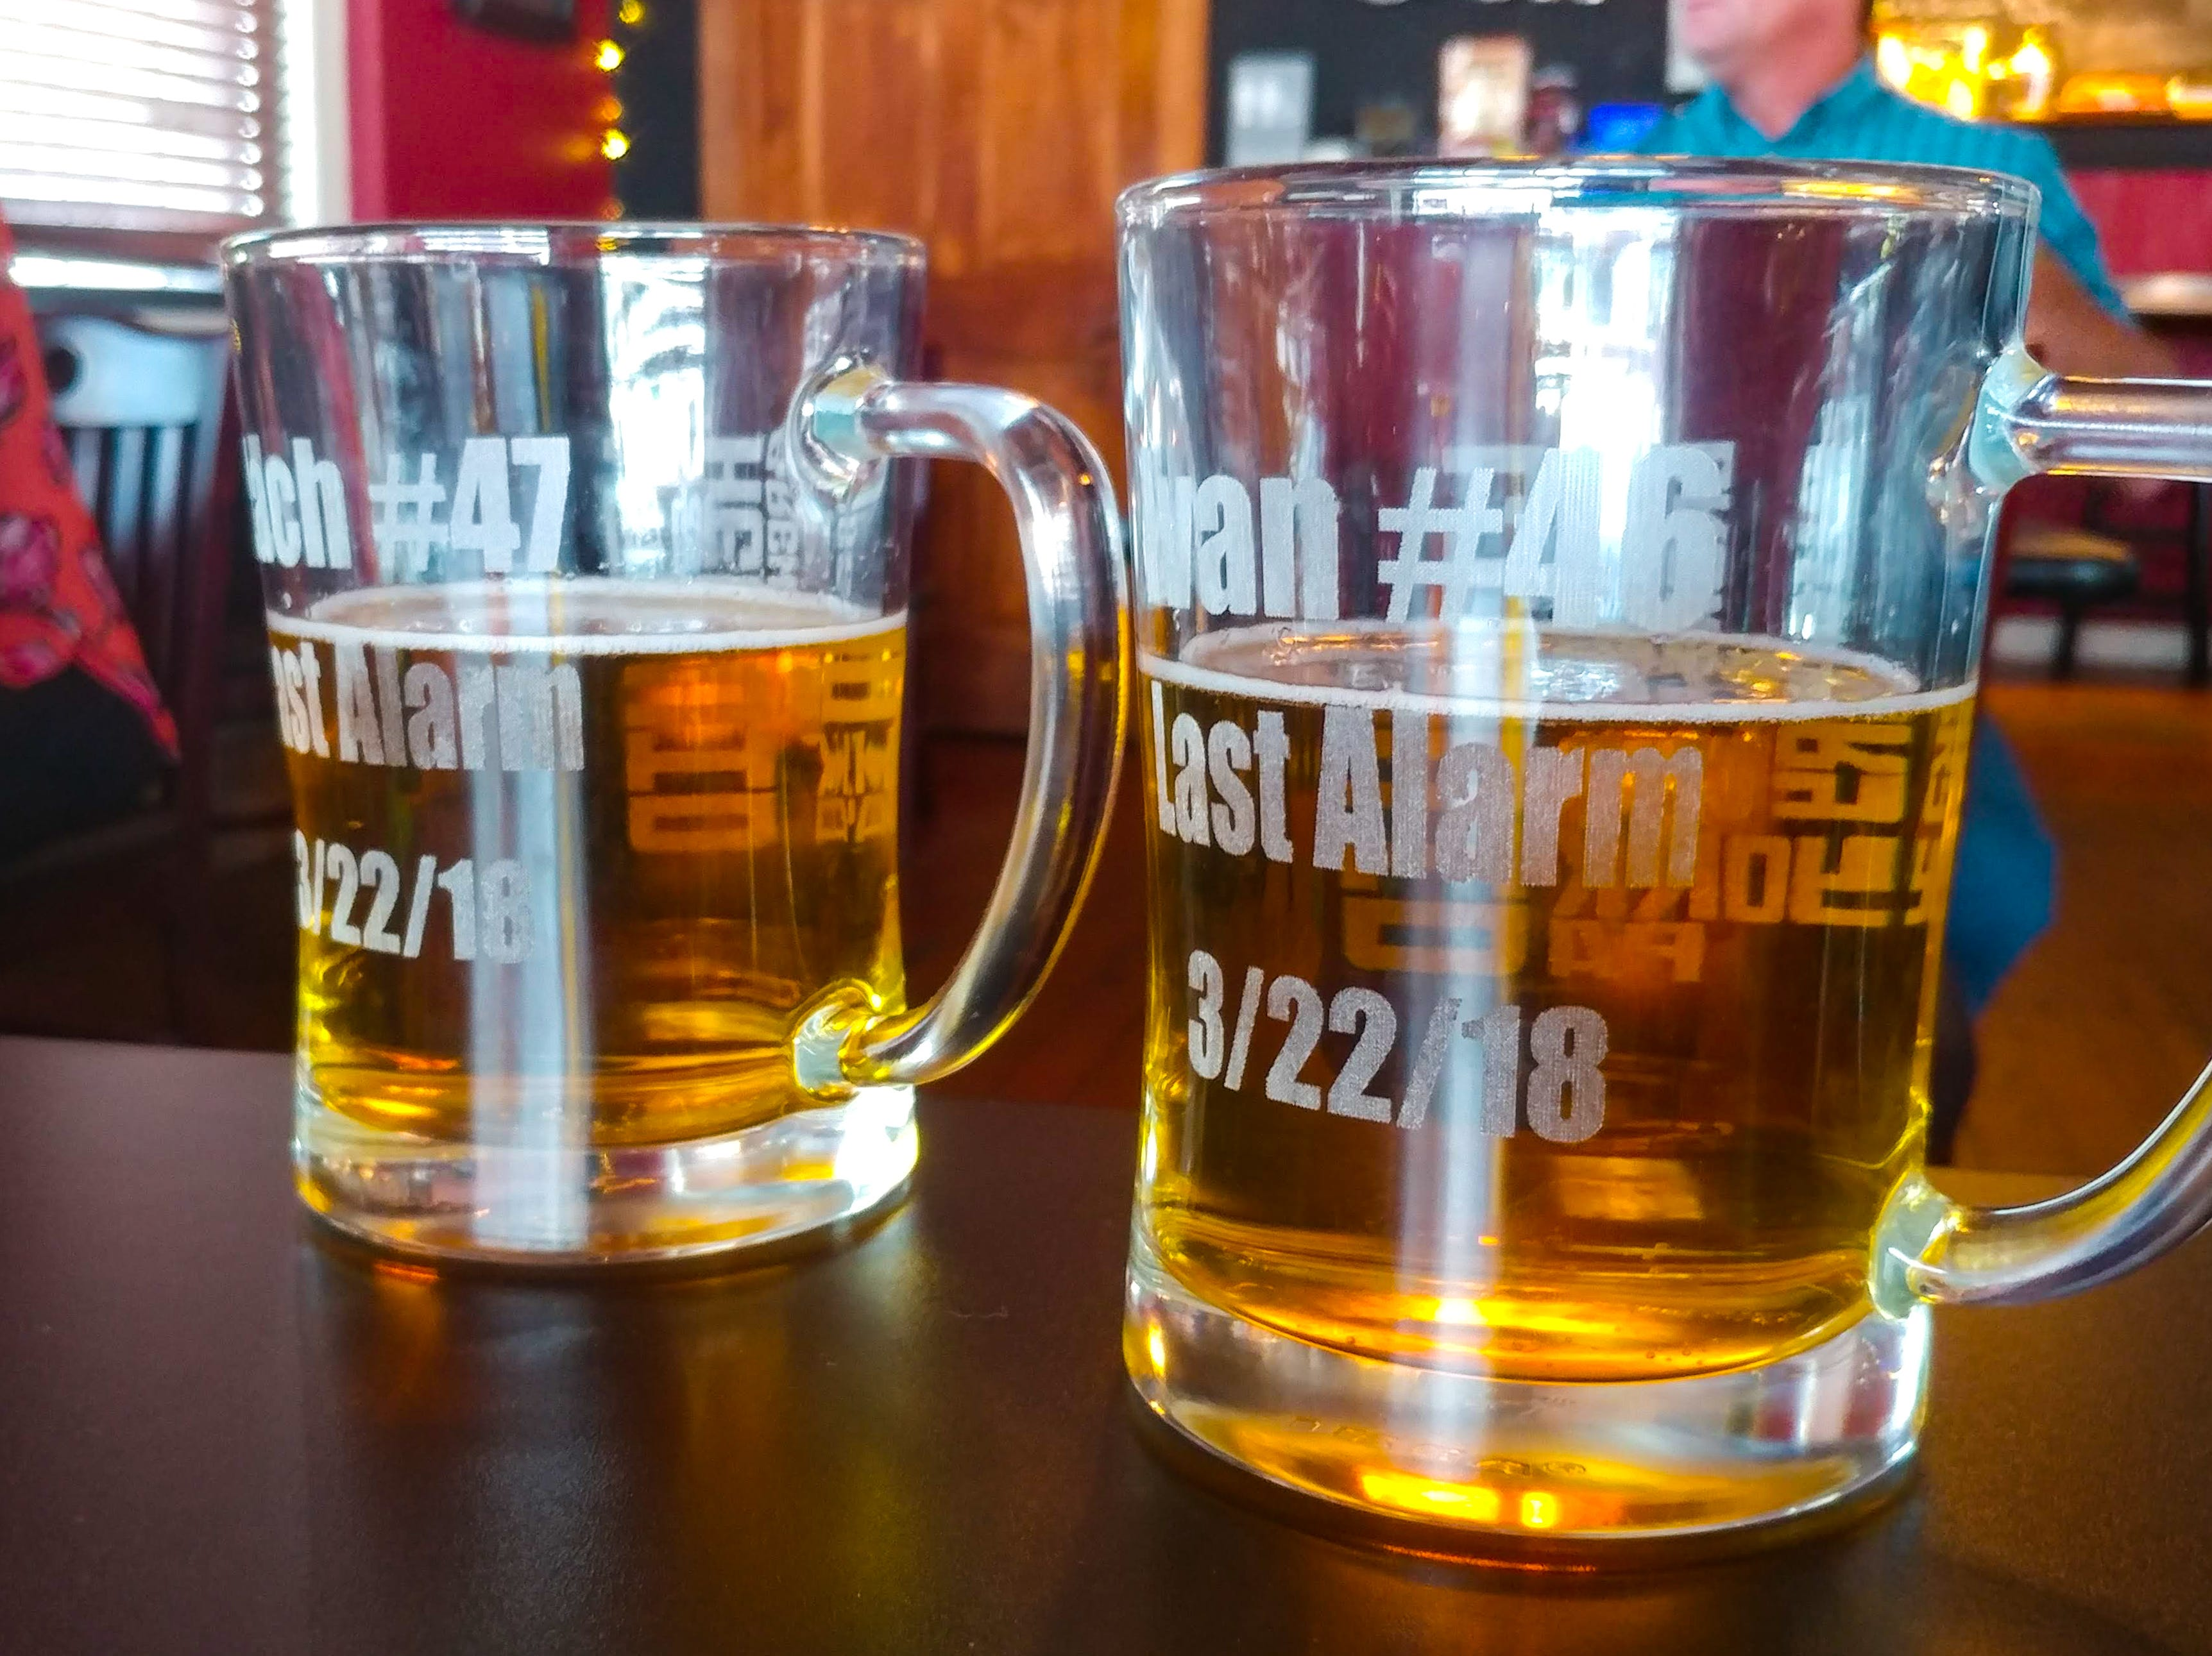 On the 22nd of every month, York City firefighters gather at the Local Hero brew pub to toast their fallen brothers. Two mugs dedicated to Ivan Flanscha and Zach Anthony are filled in their memory each time.